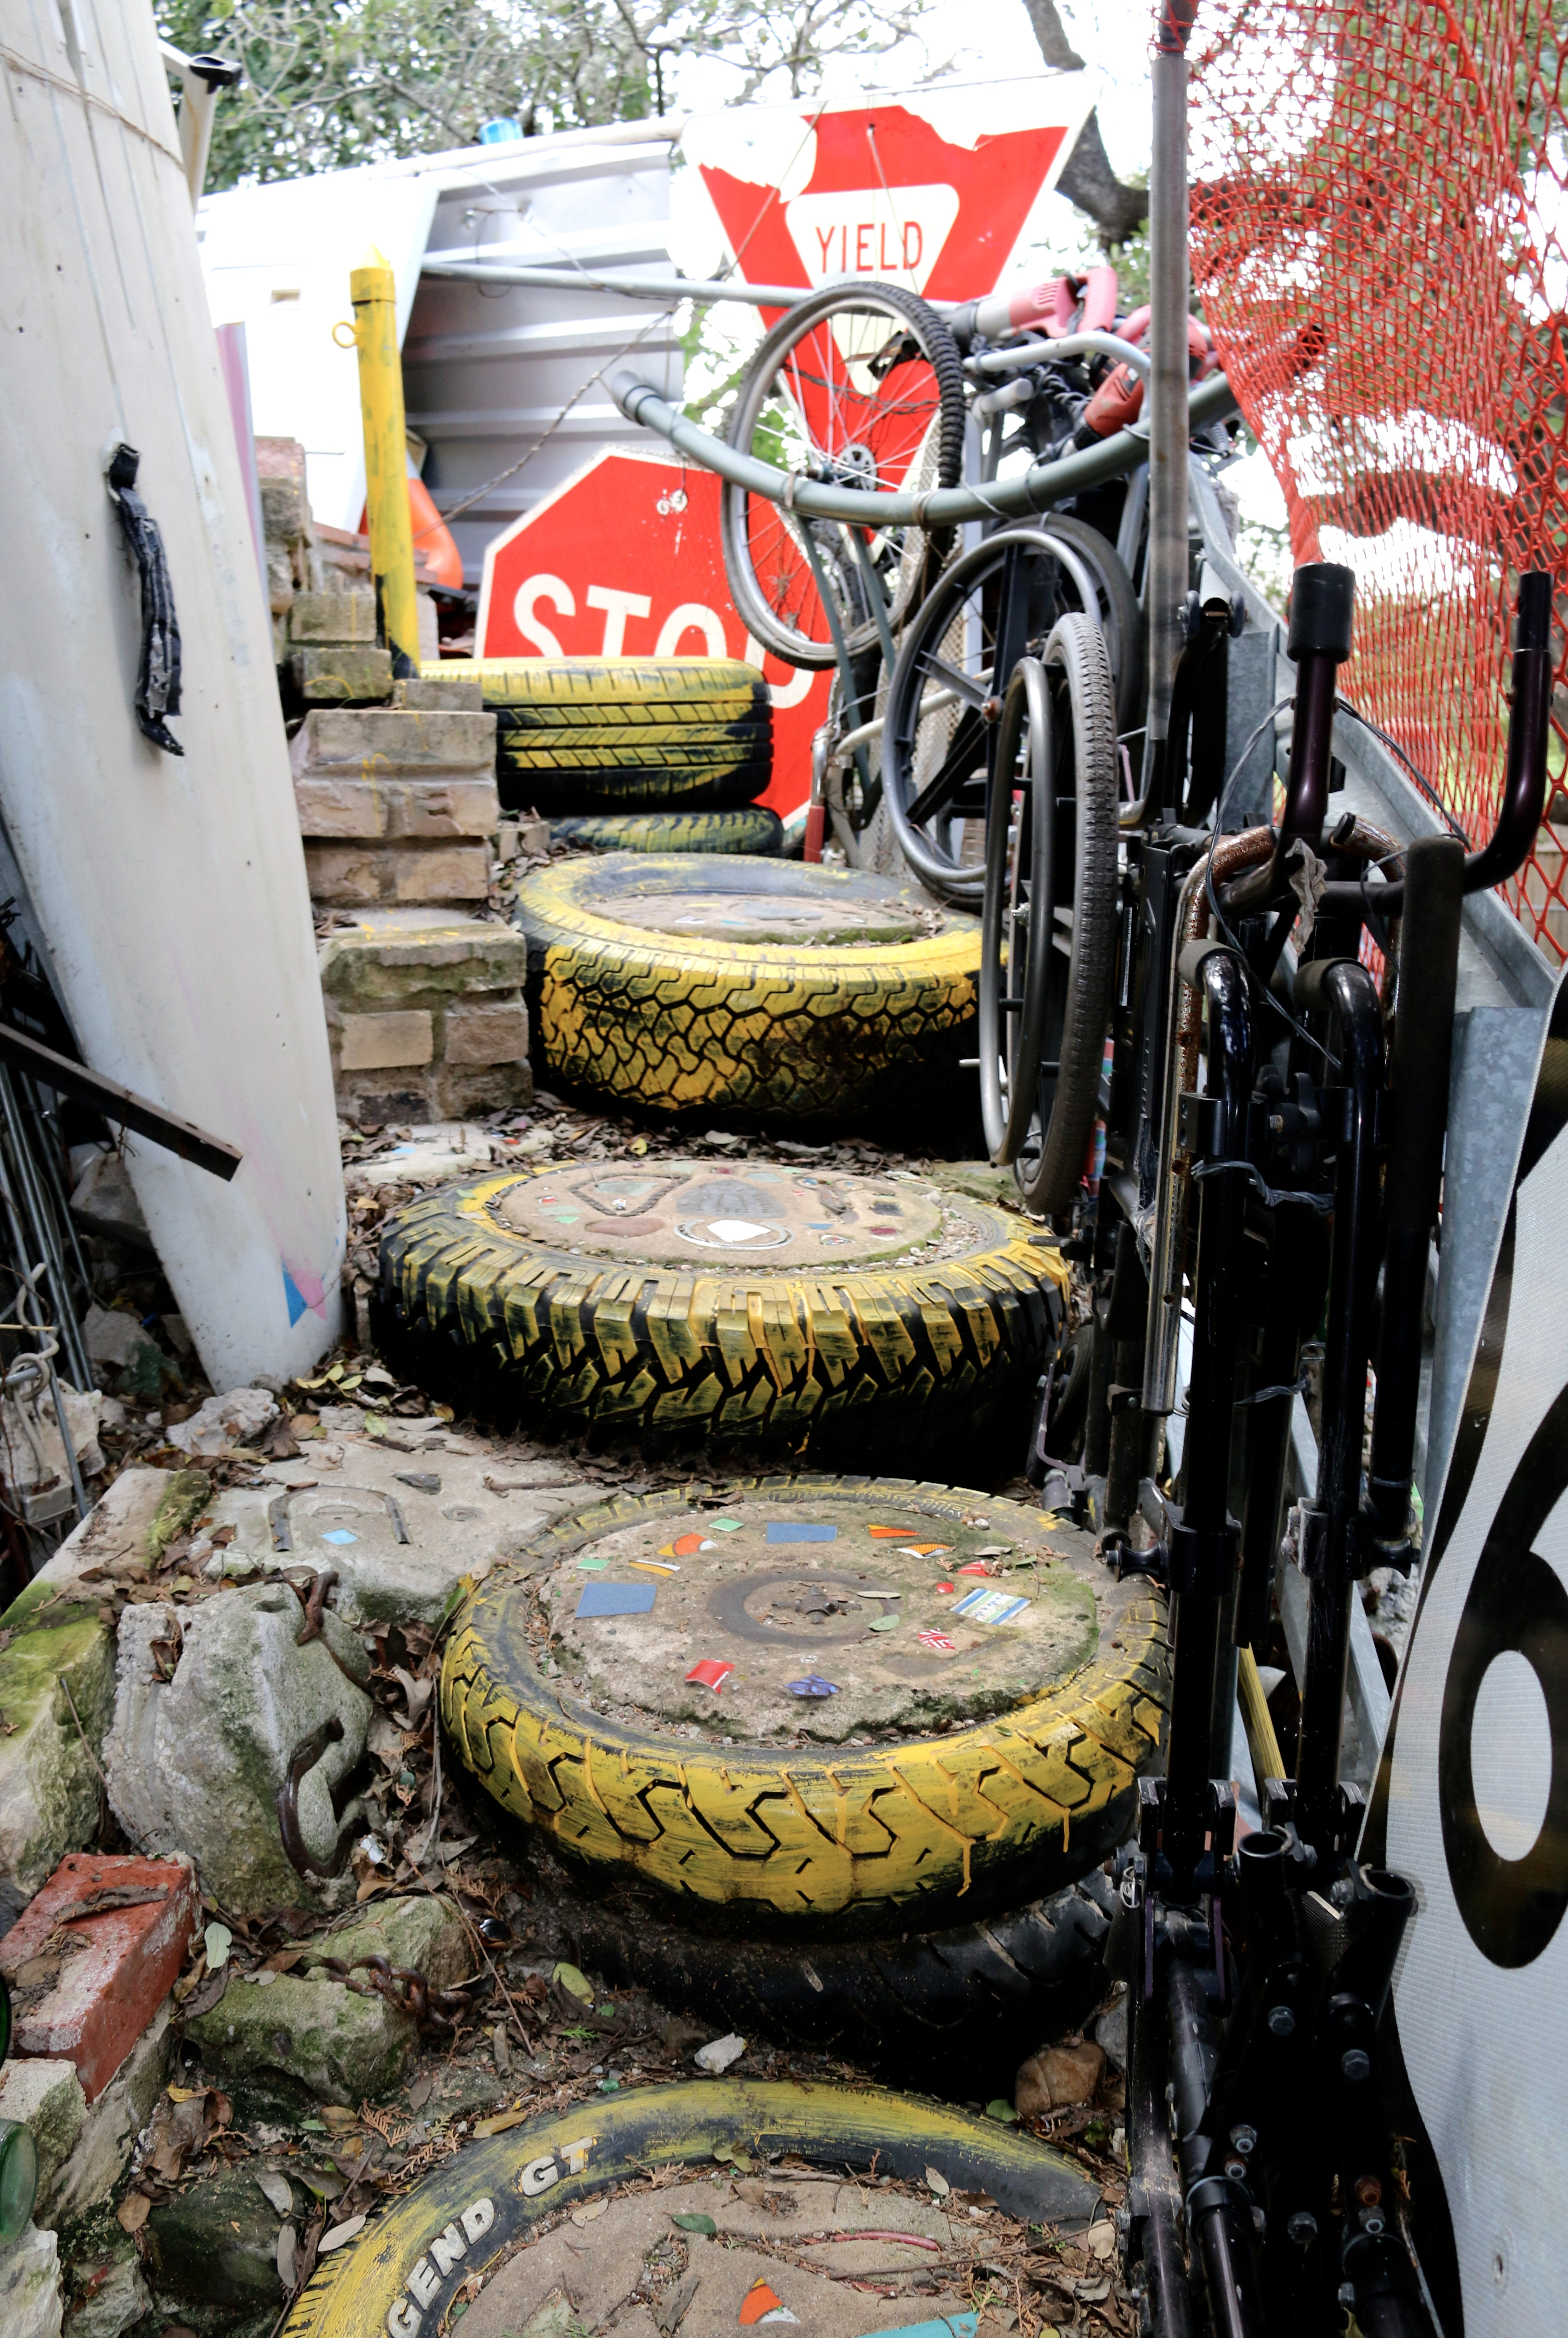 Cathedral of Junk Stairs